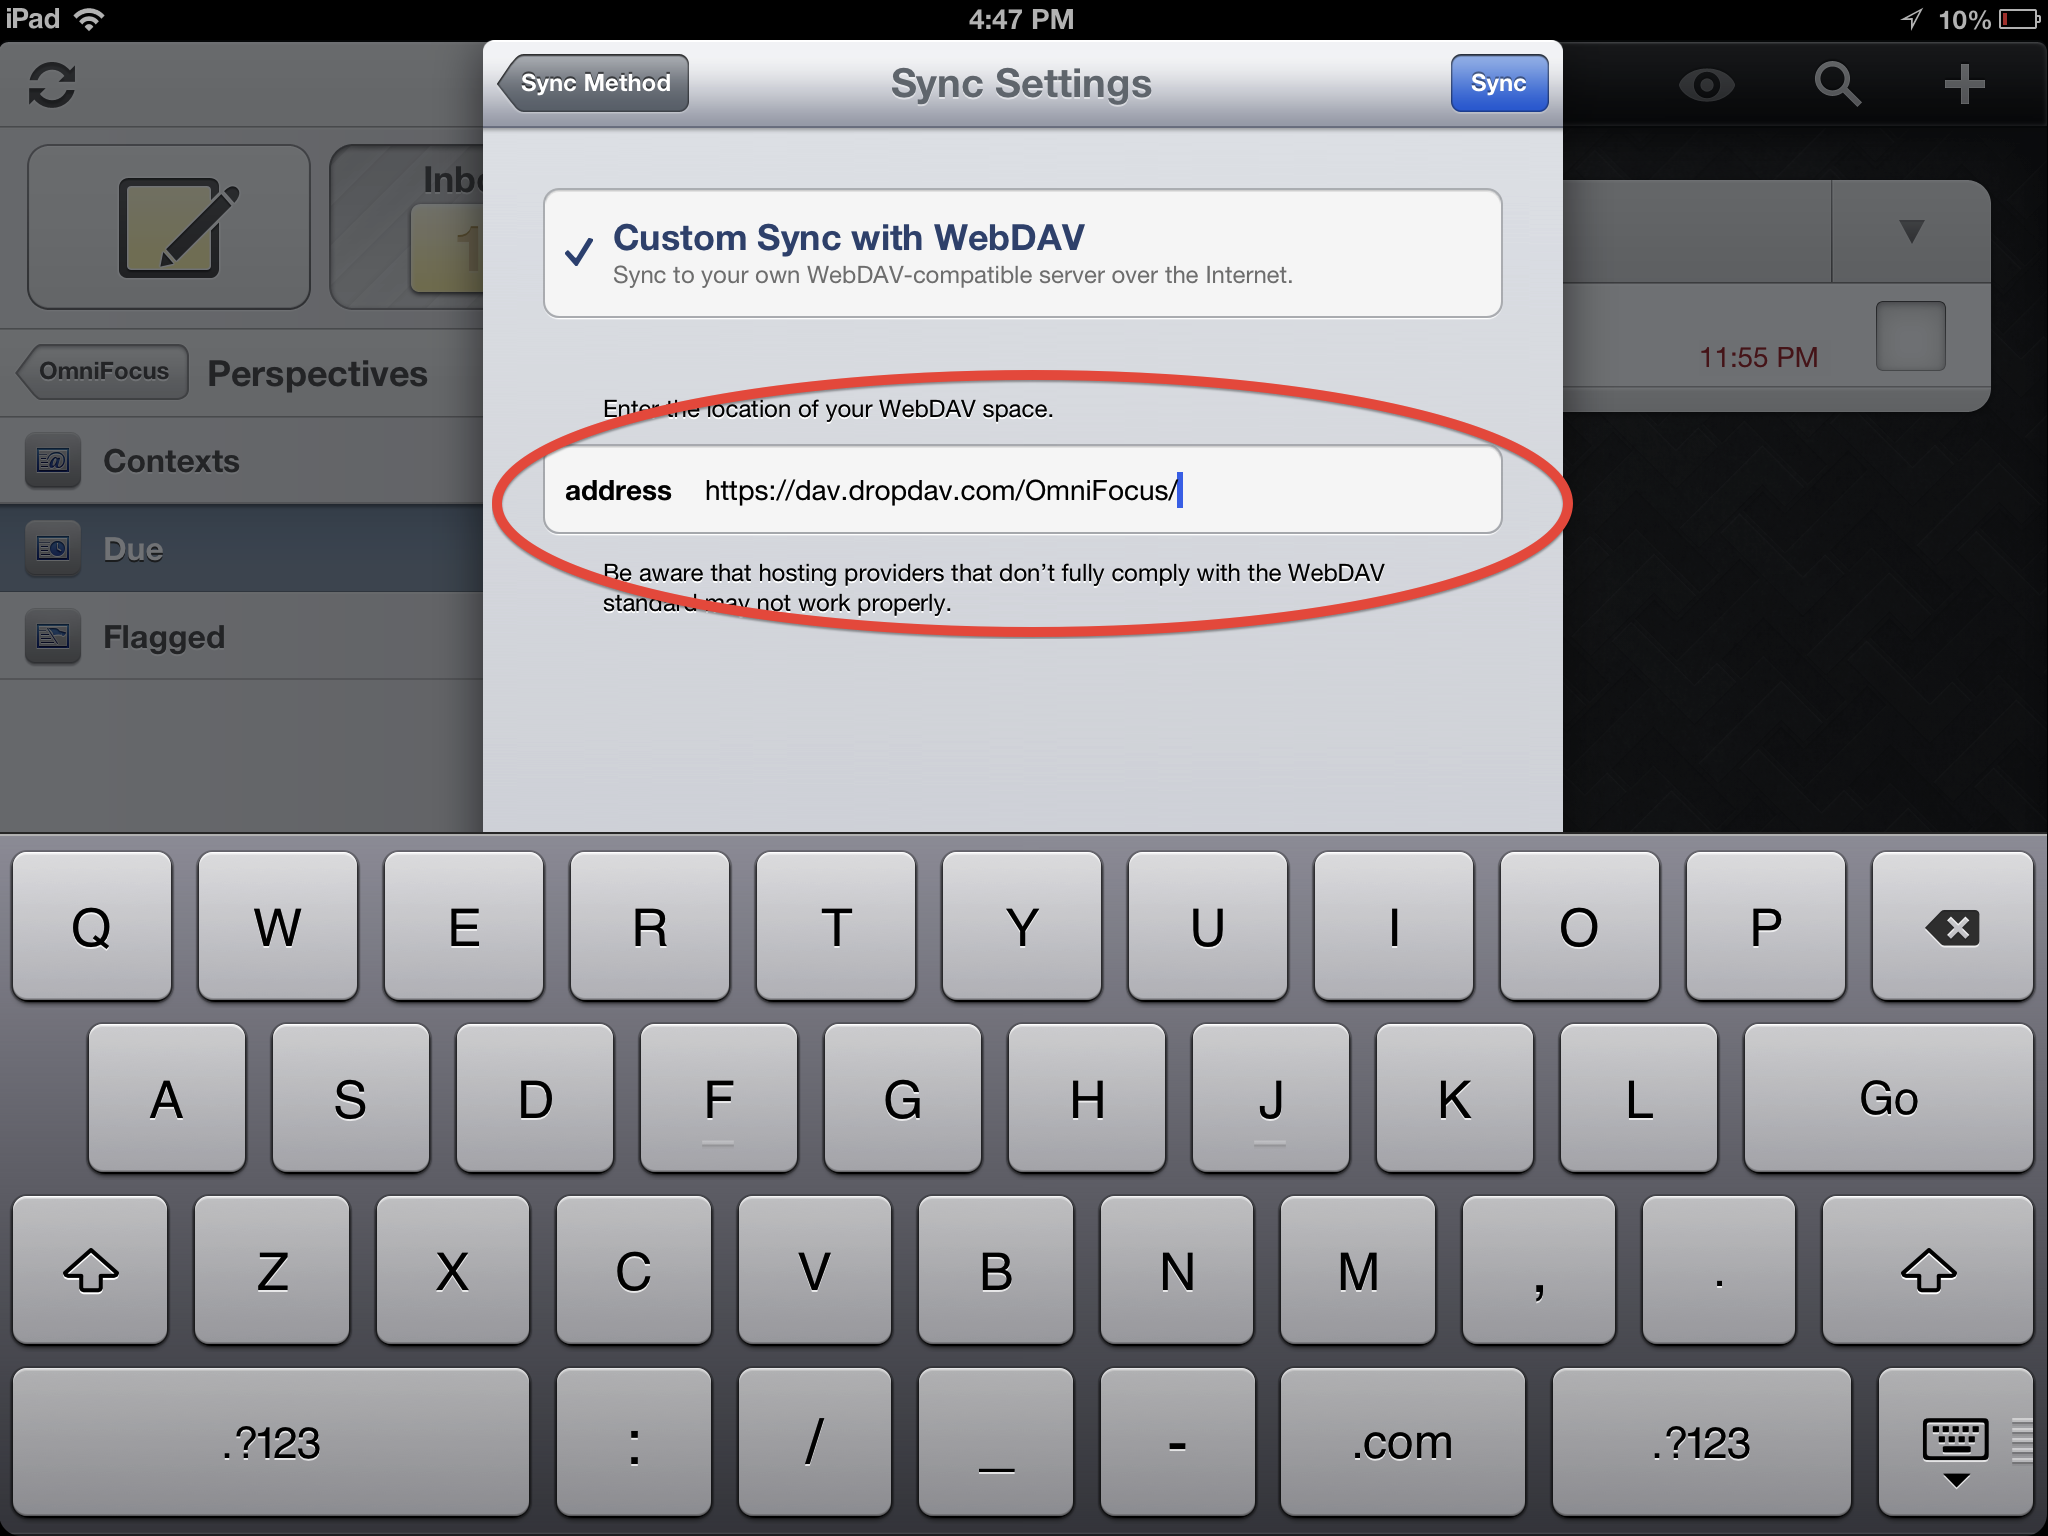 How to Set Up WebDav with Omnifocus on iPad - DropDAV - The